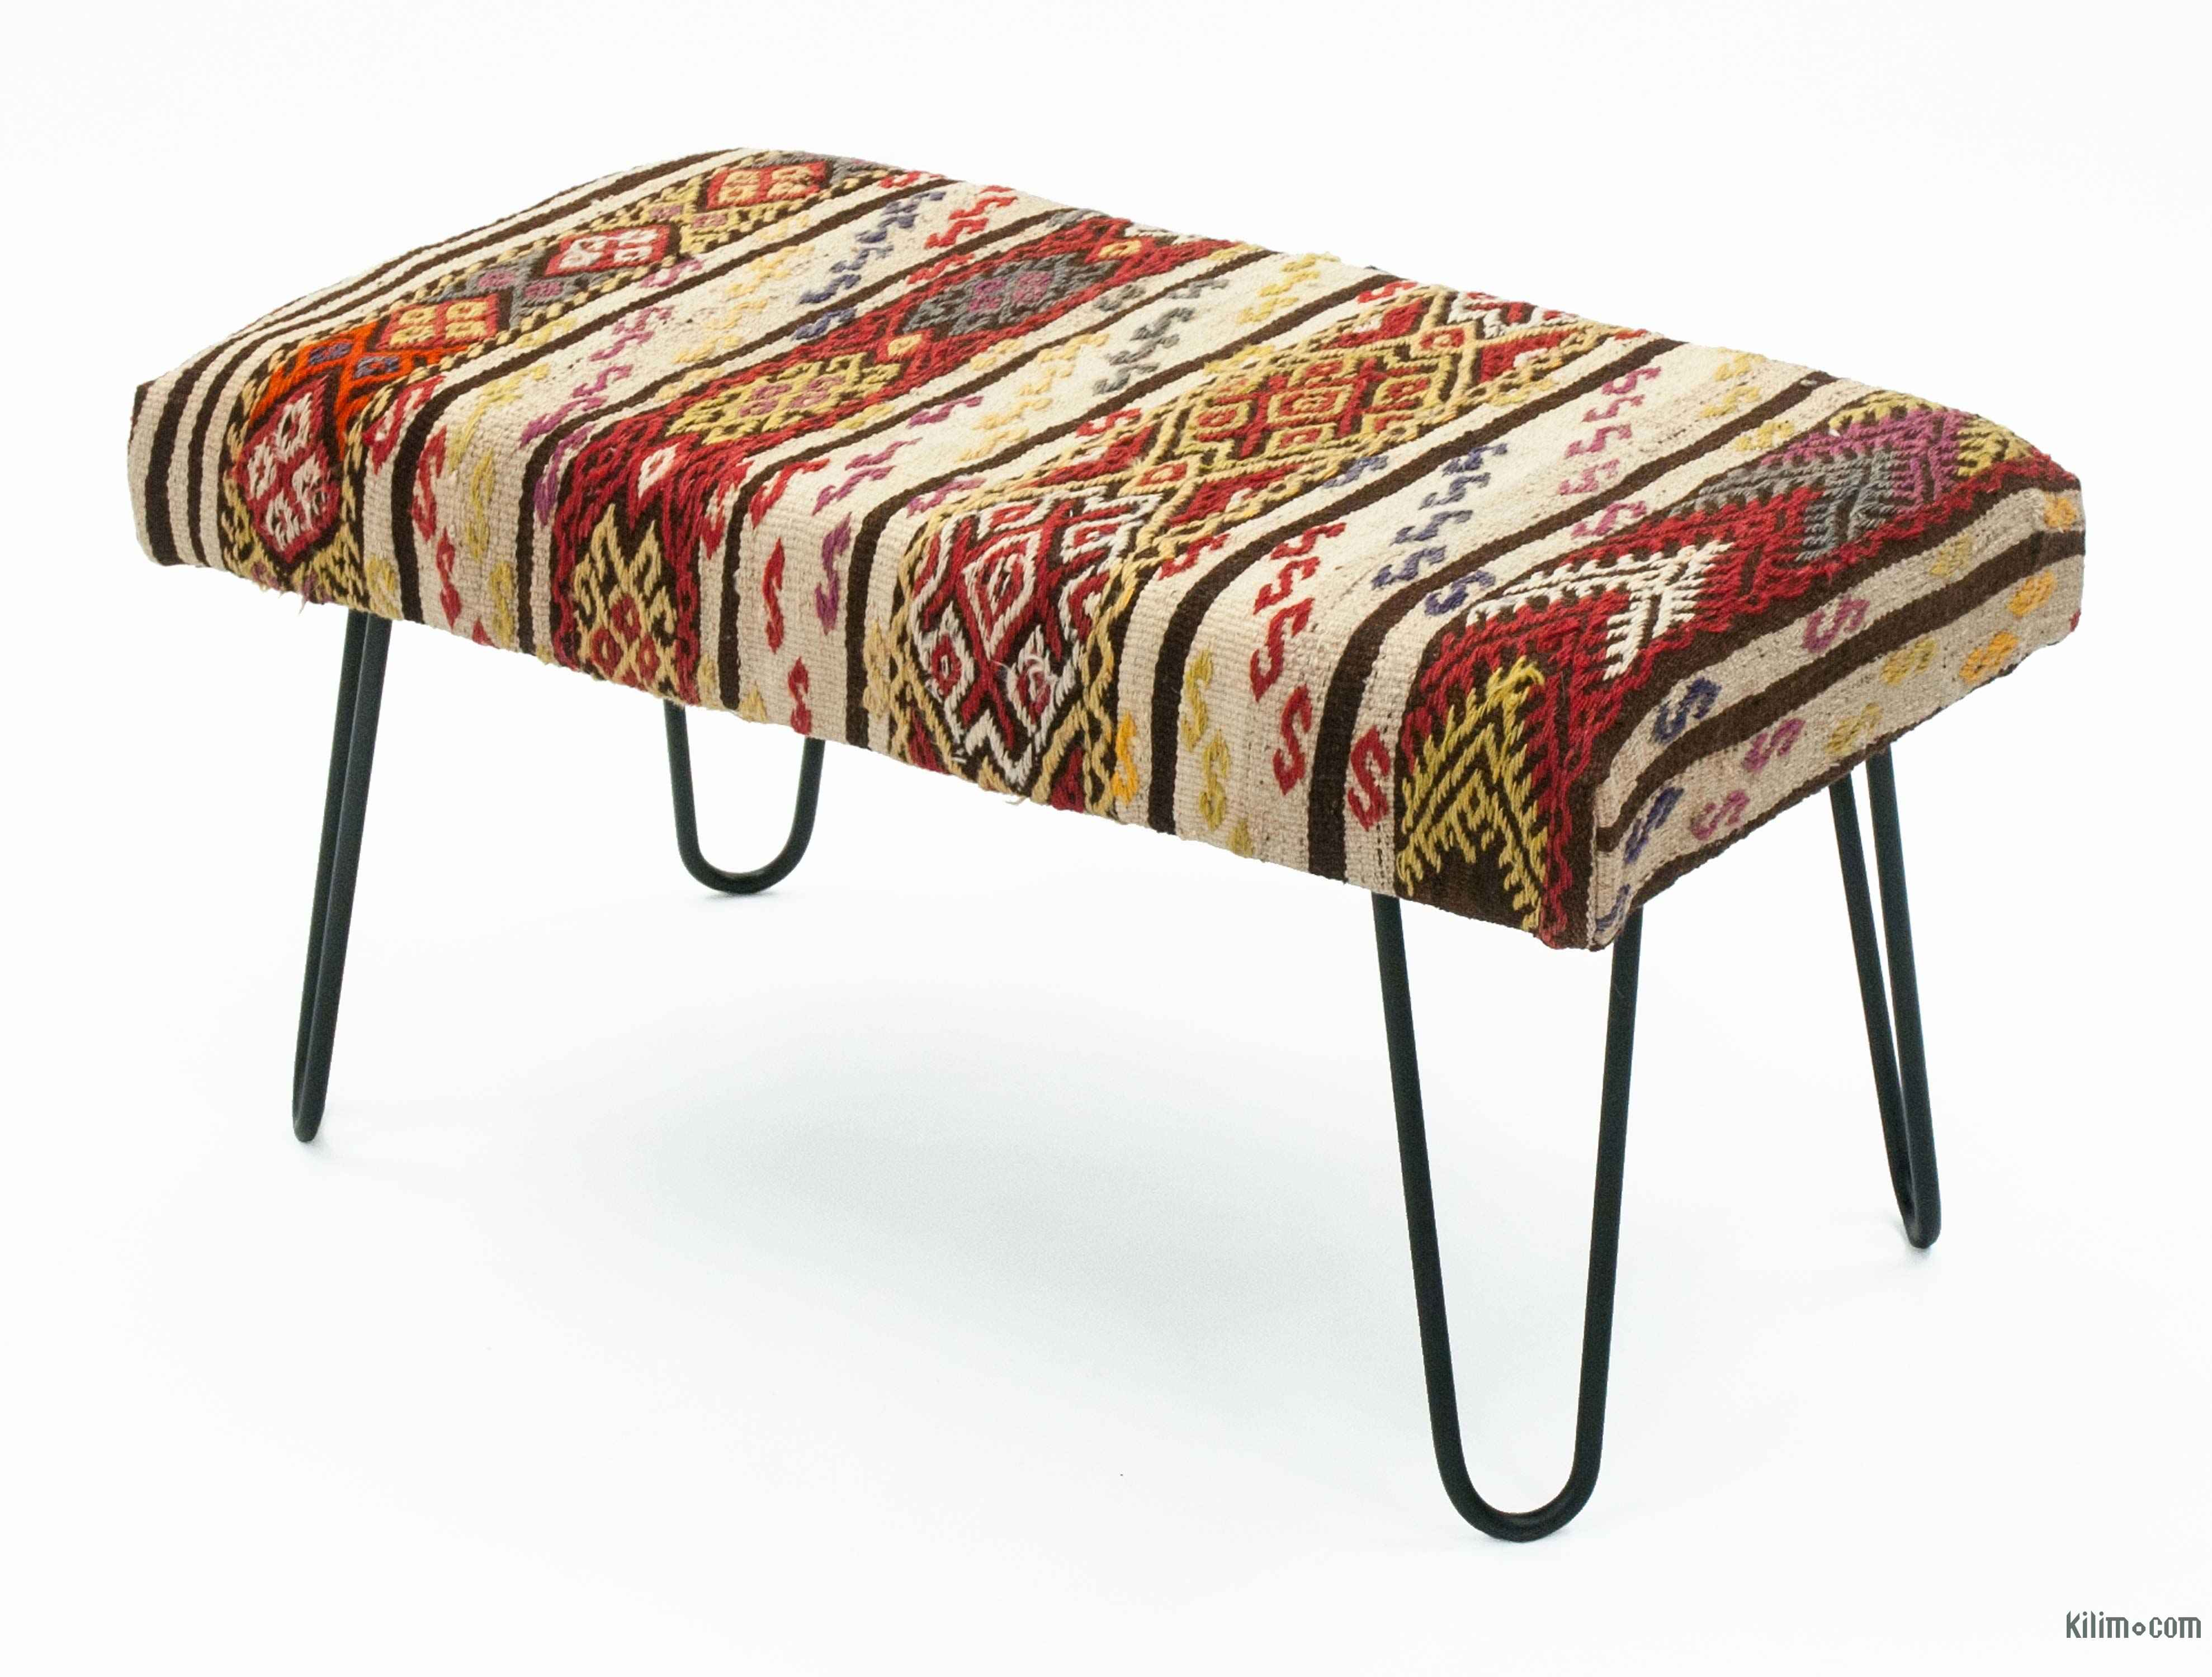 K0027870 Kilim Bench With Hairpin Legs Kilimcom The Source For